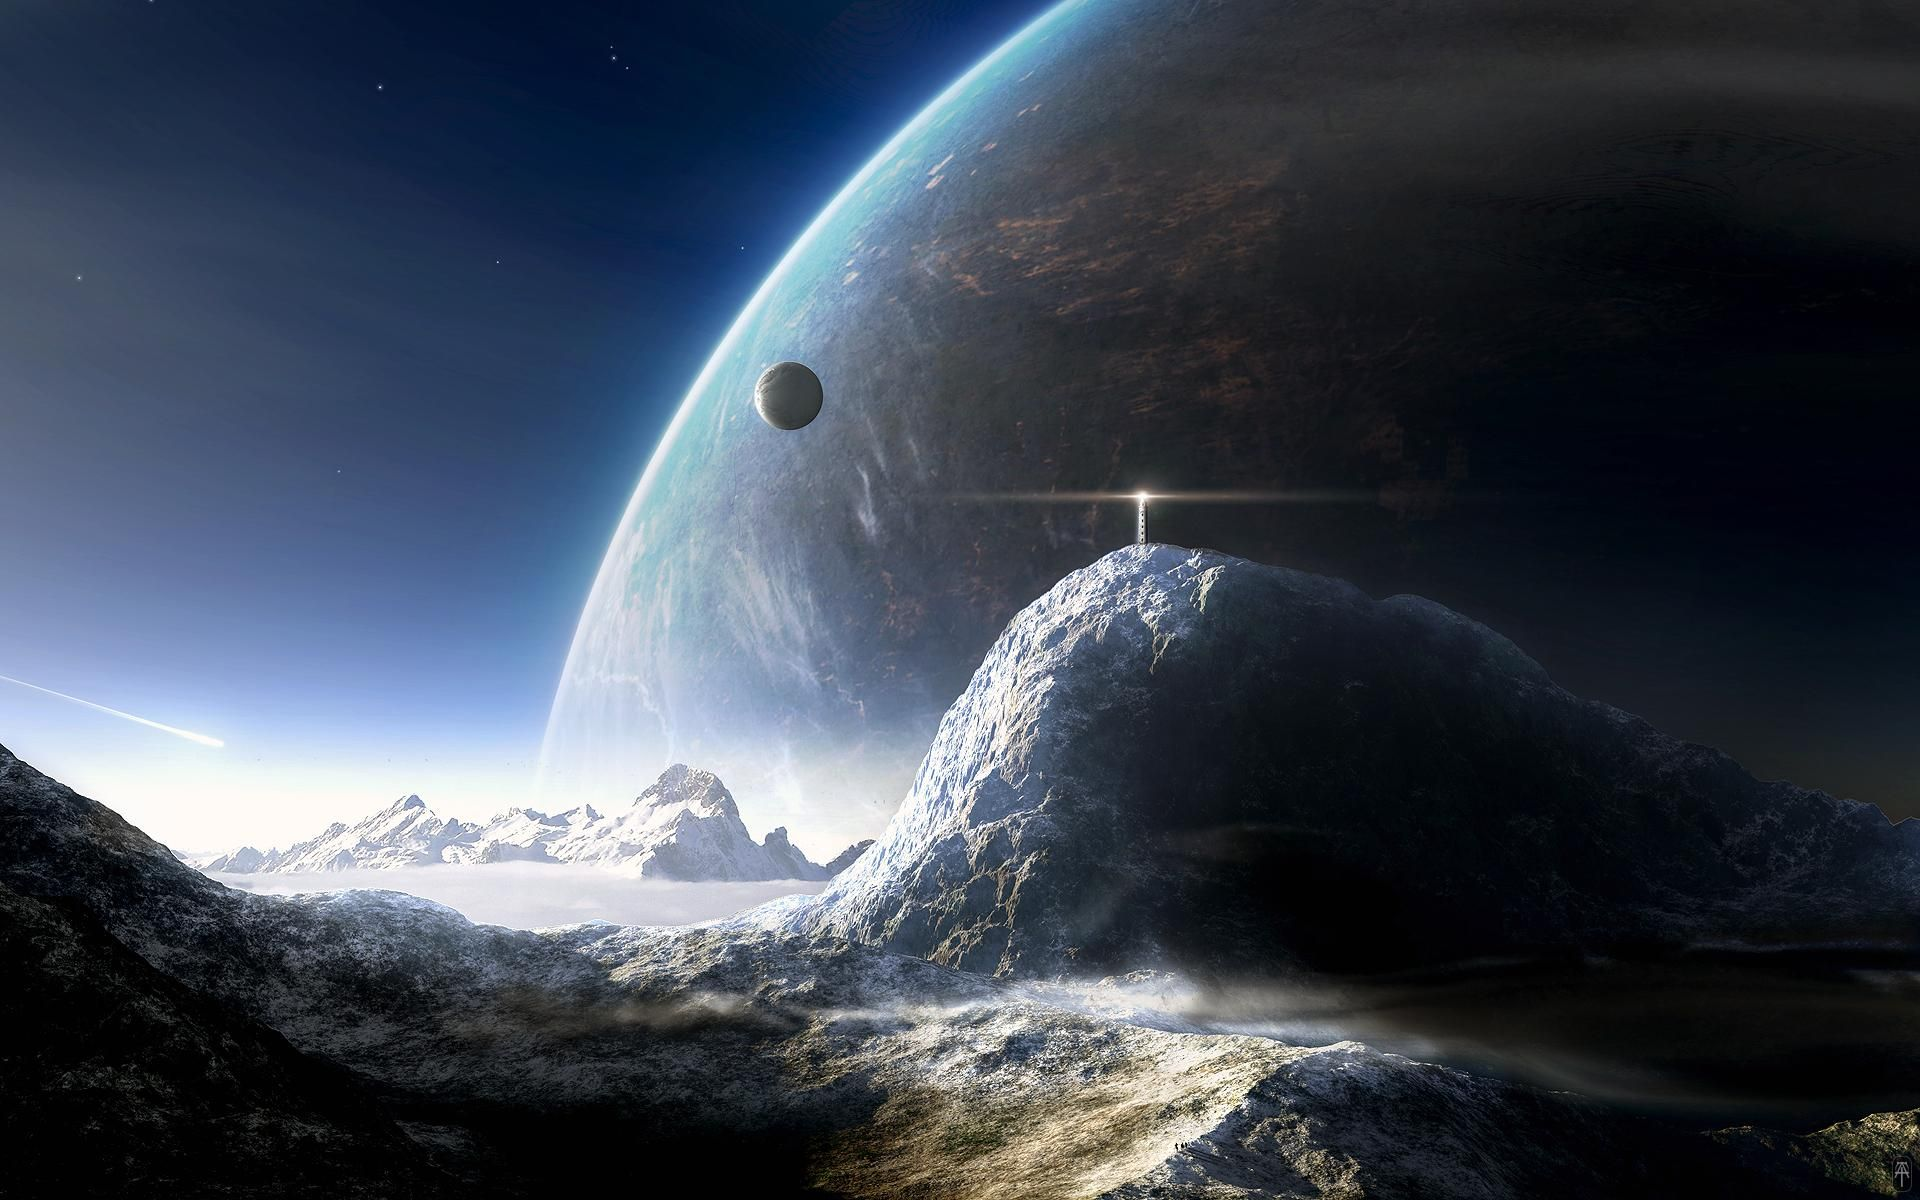 Space Art Abstract Space Gallery Take A Quick Break Visit Our Website For More Pictures Planets Wallpaper Sci Fi Wallpaper Space Art